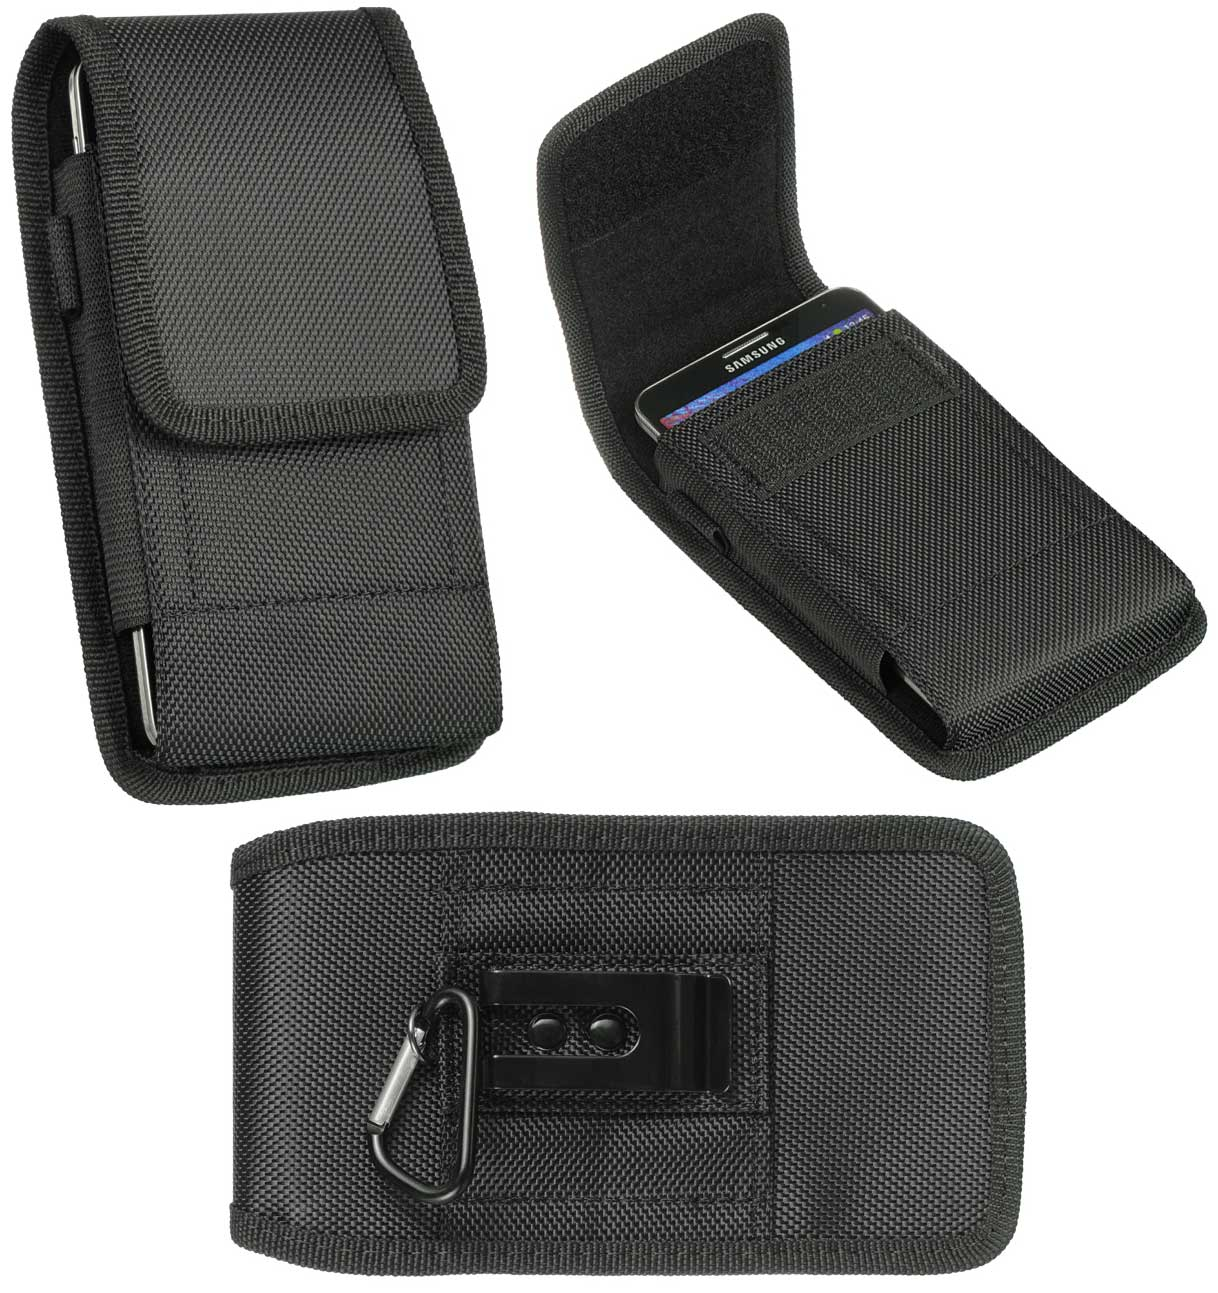 LG Spectrum Neoprene Nylon Case Pouch Clip Hook Black